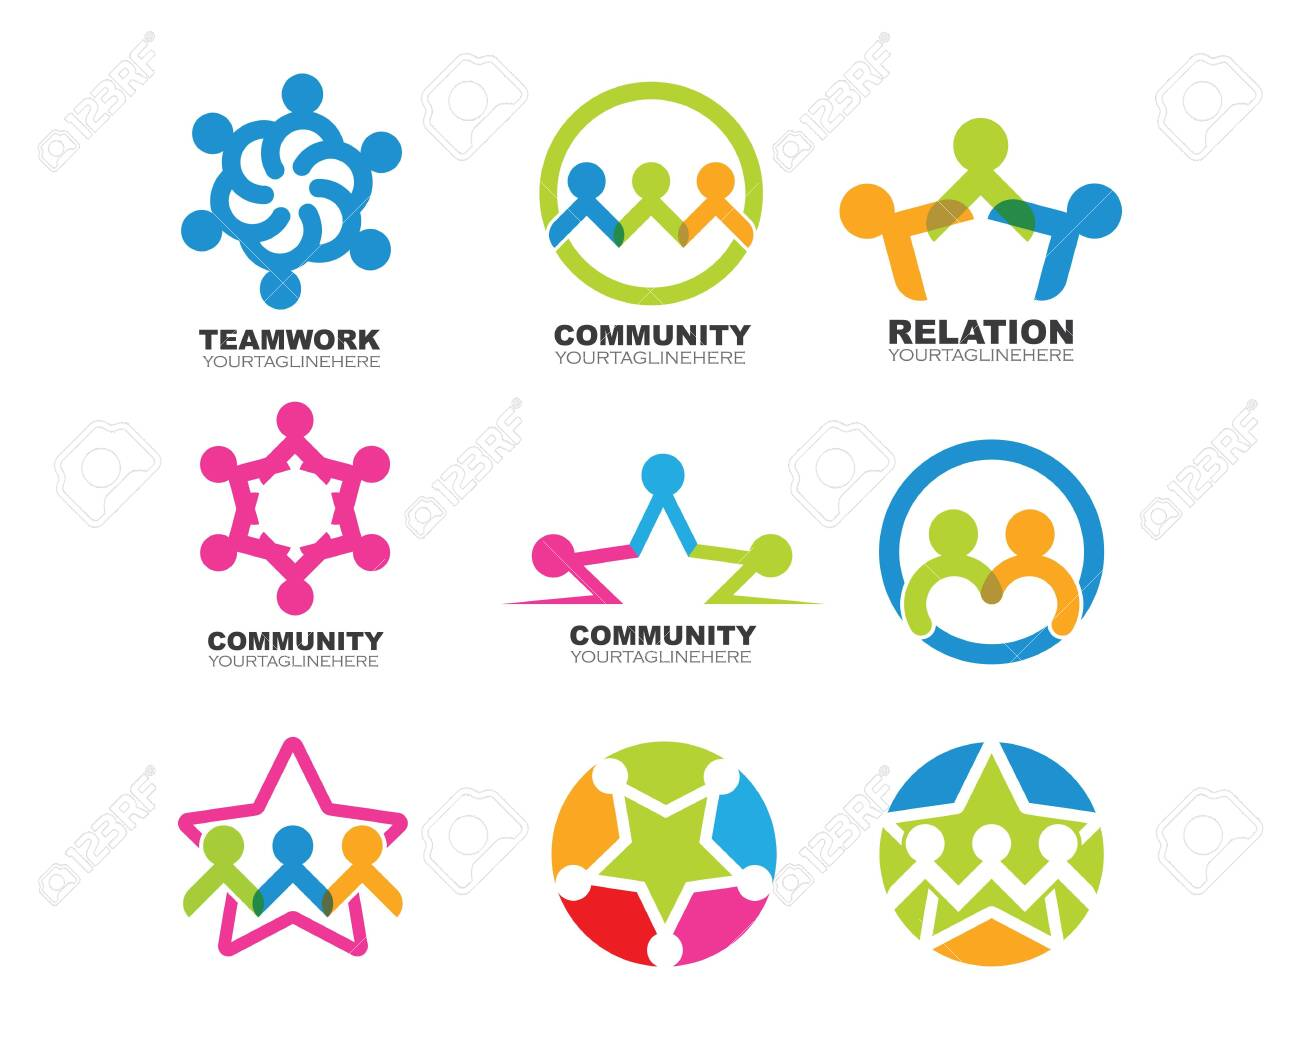 Community, network and social icon design template - 136969441